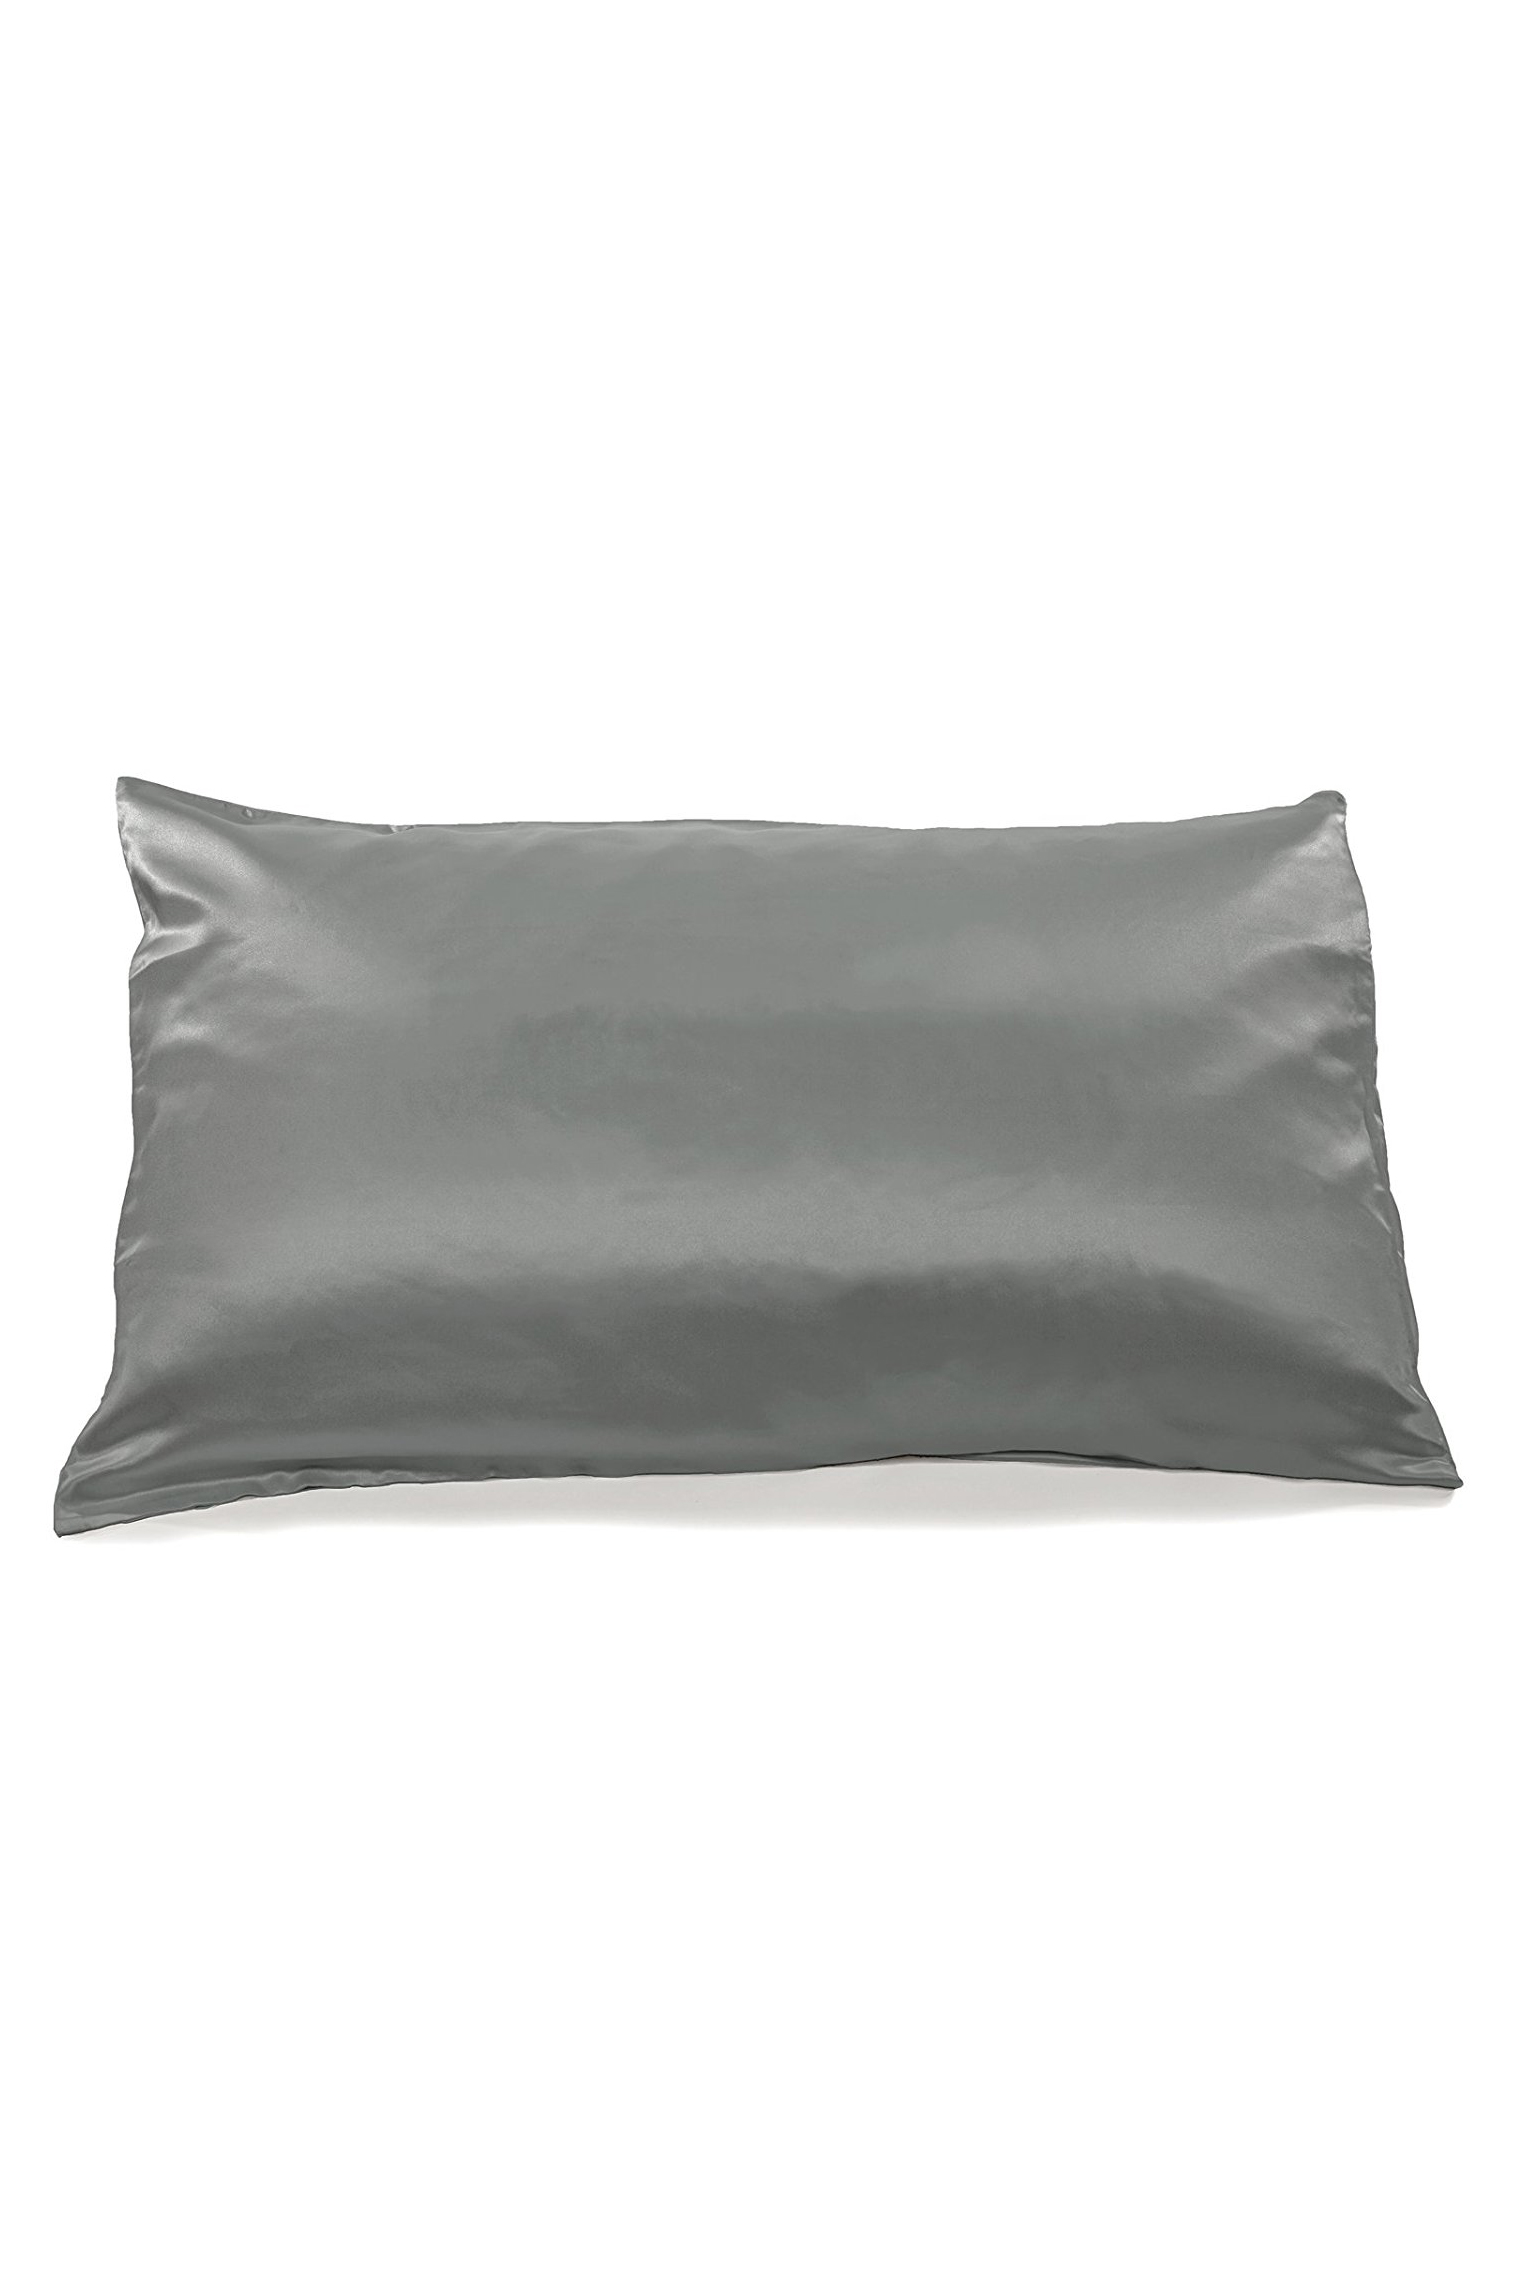 Best Silk Pillowcases - Silky Pillowcase Reviews for Wrinkles and ...